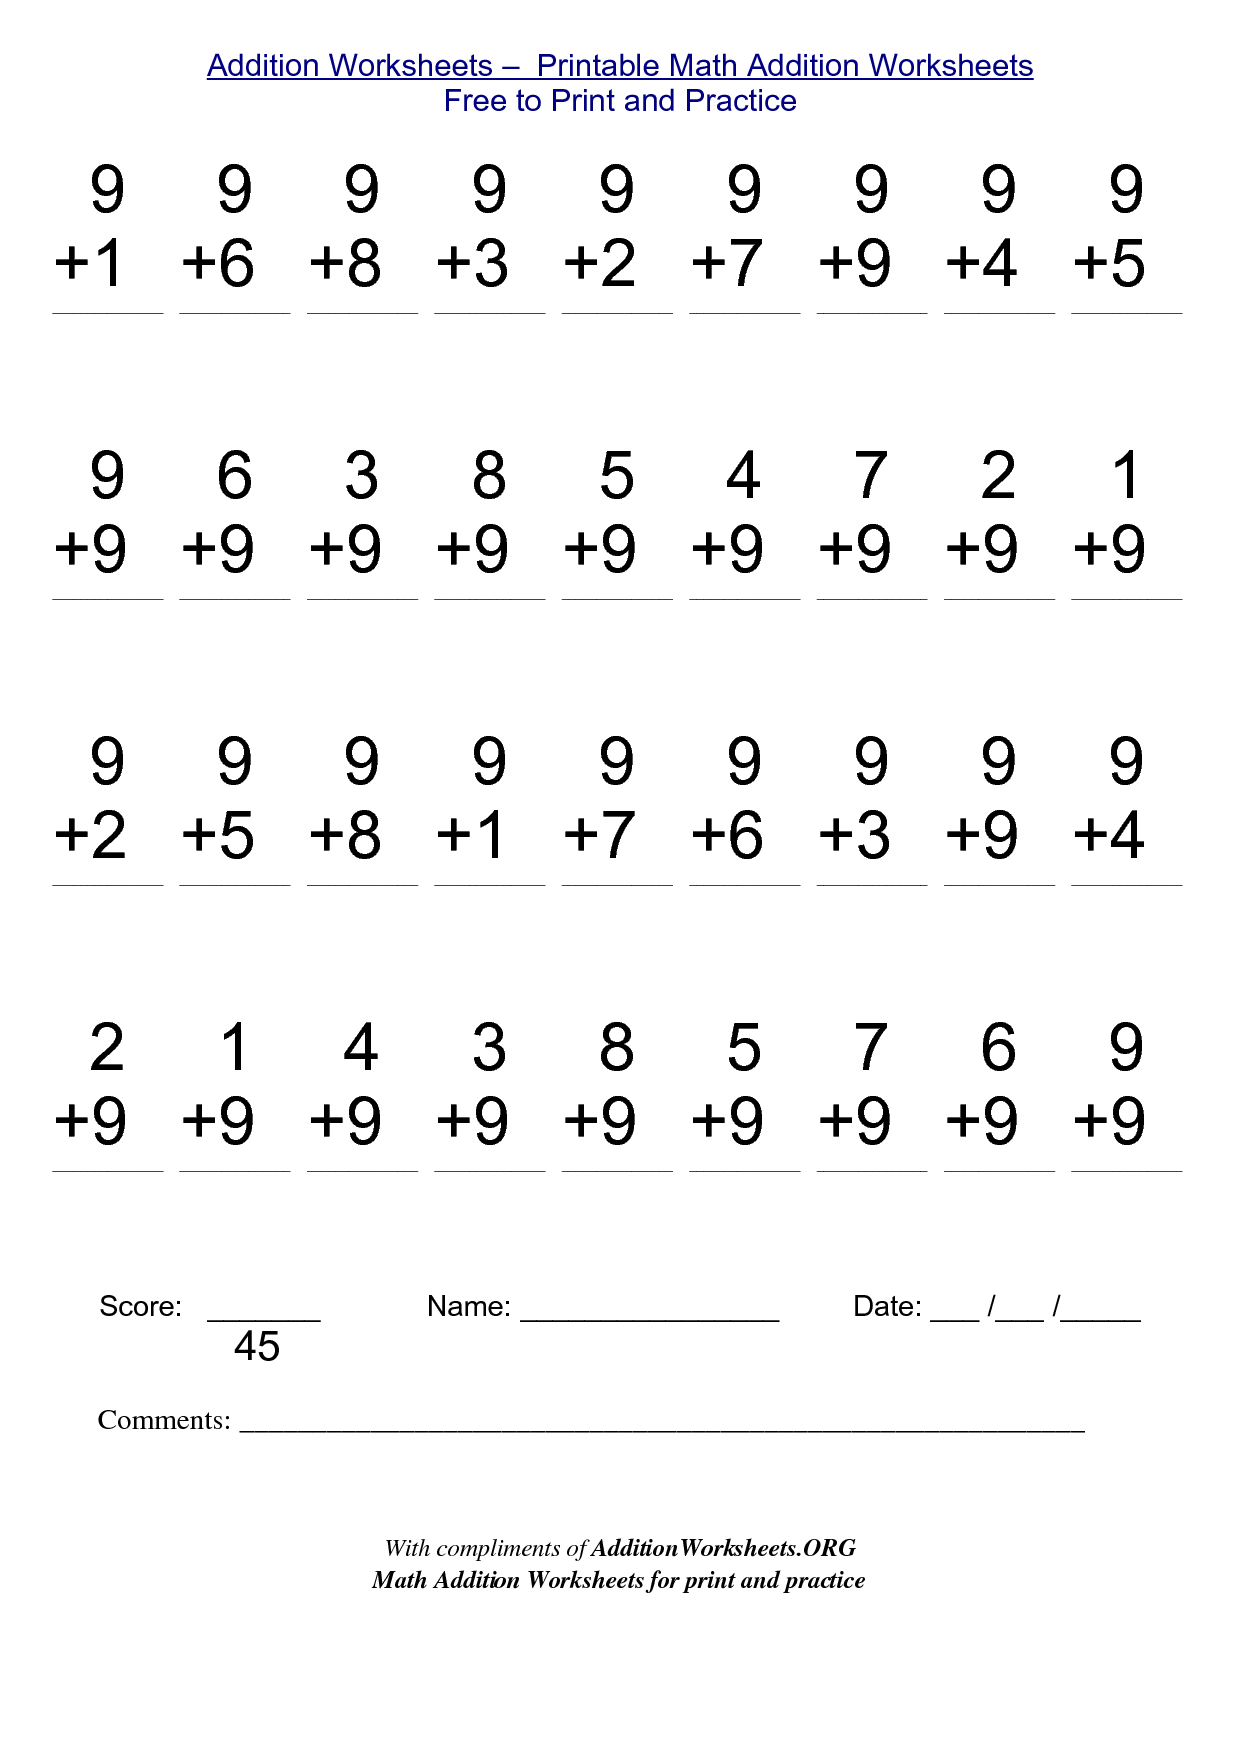 Worksheet Addition Worksheet For 1st Grade addition math worksheets elleapp 78 images about strengthening on pinterest addition